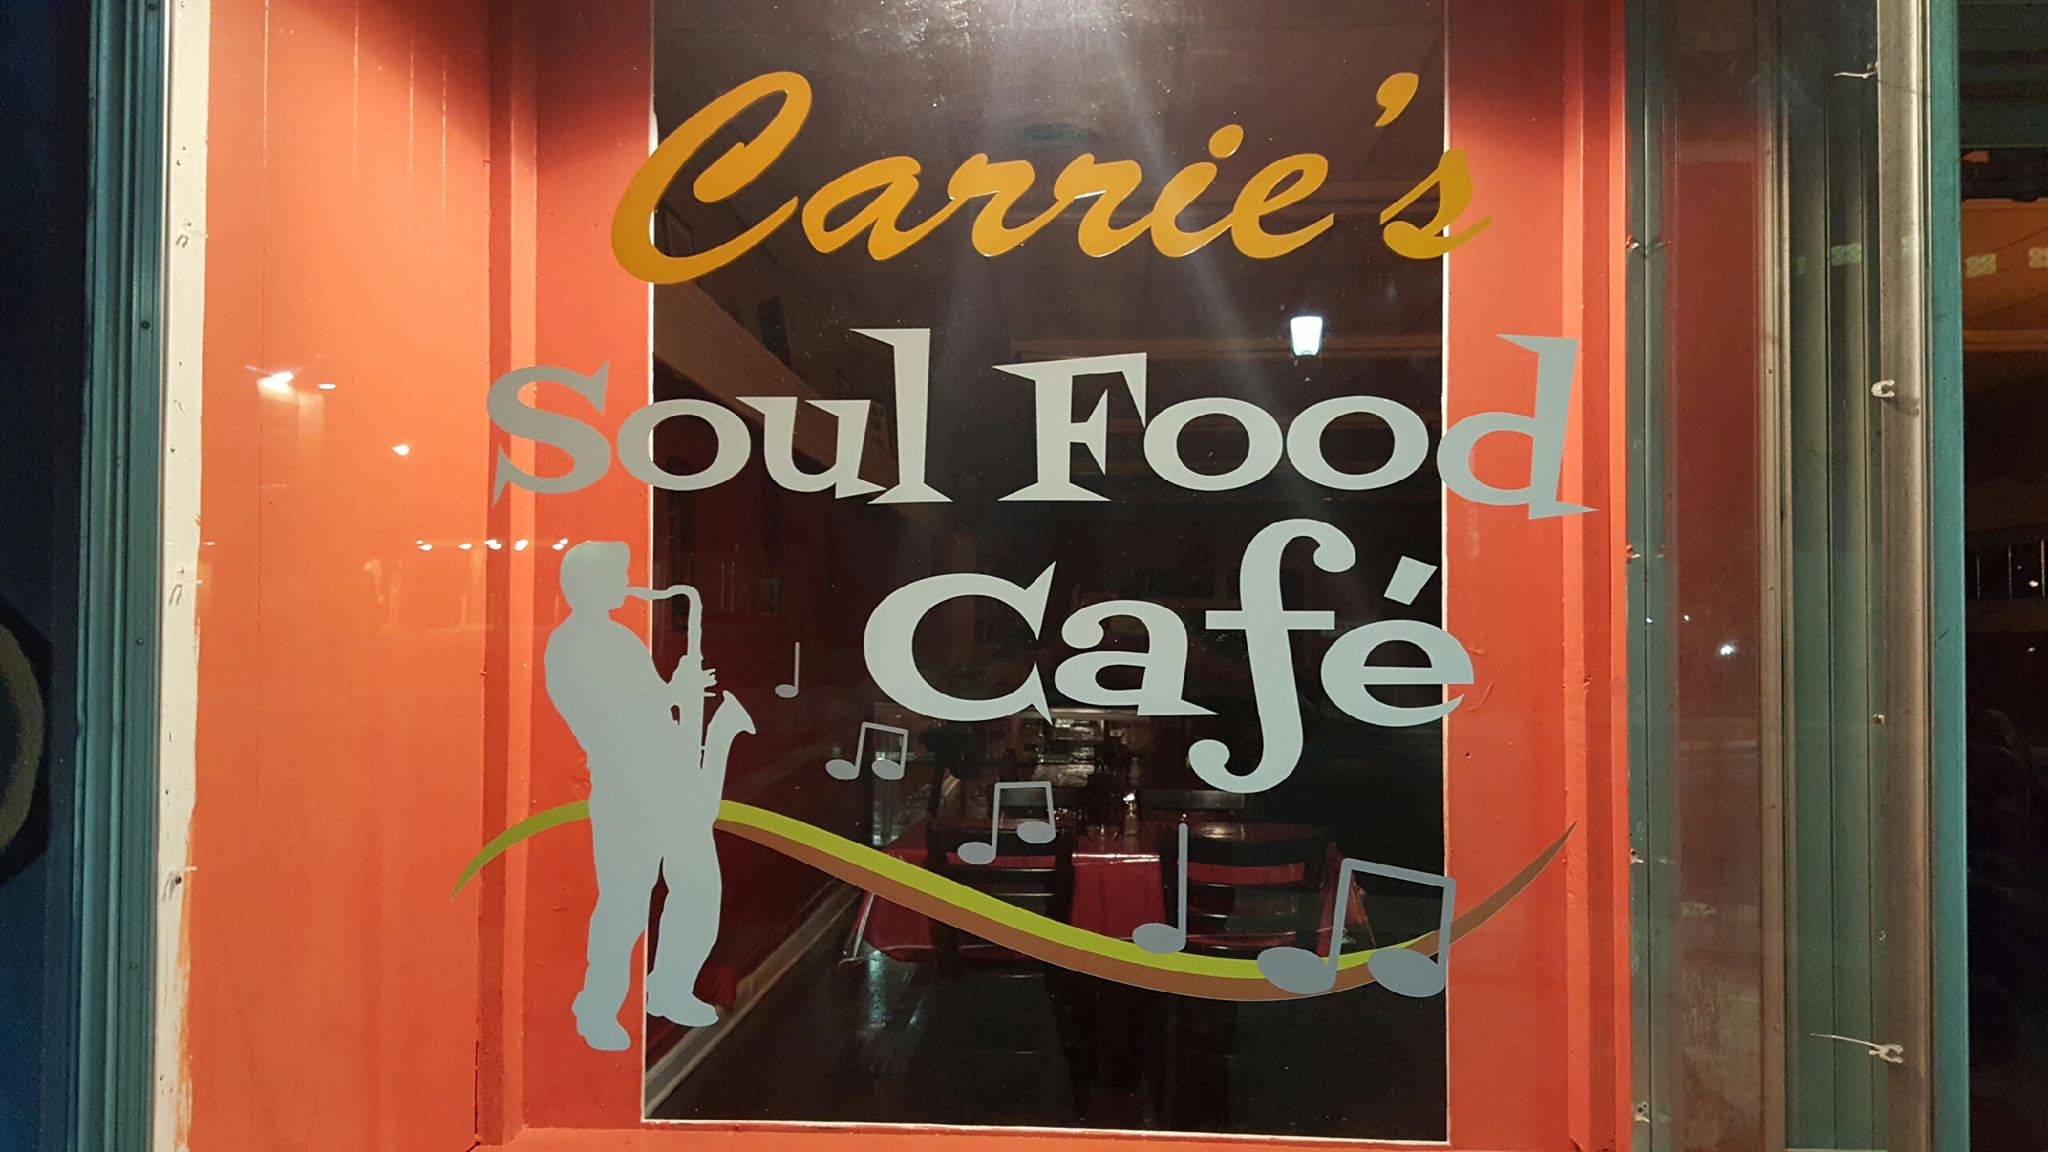 Carries Soul Food Cafe